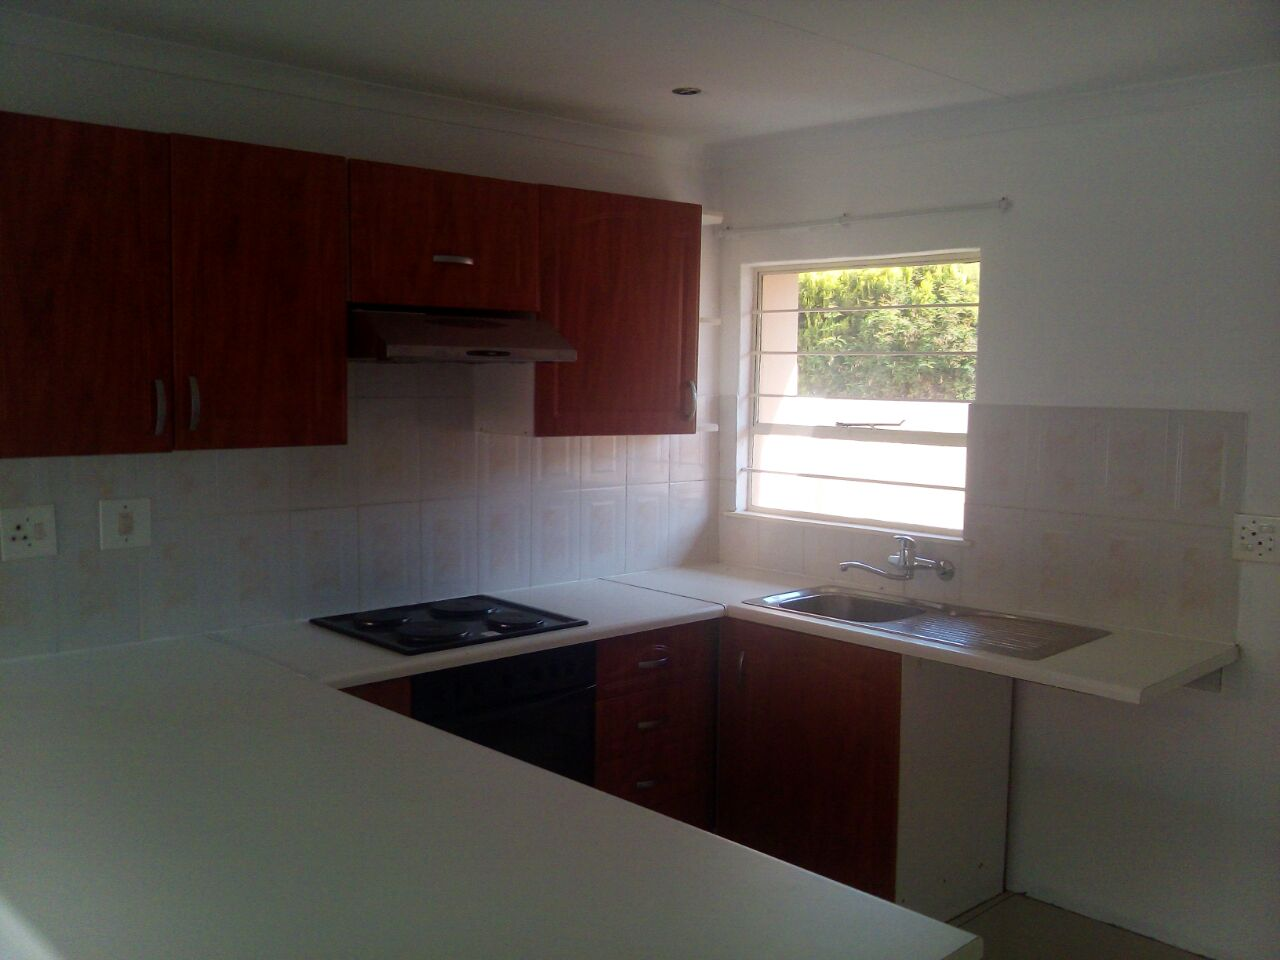 2 Bedroom Townhouse for sale in Sunninghill ENT0074719 : photo#10